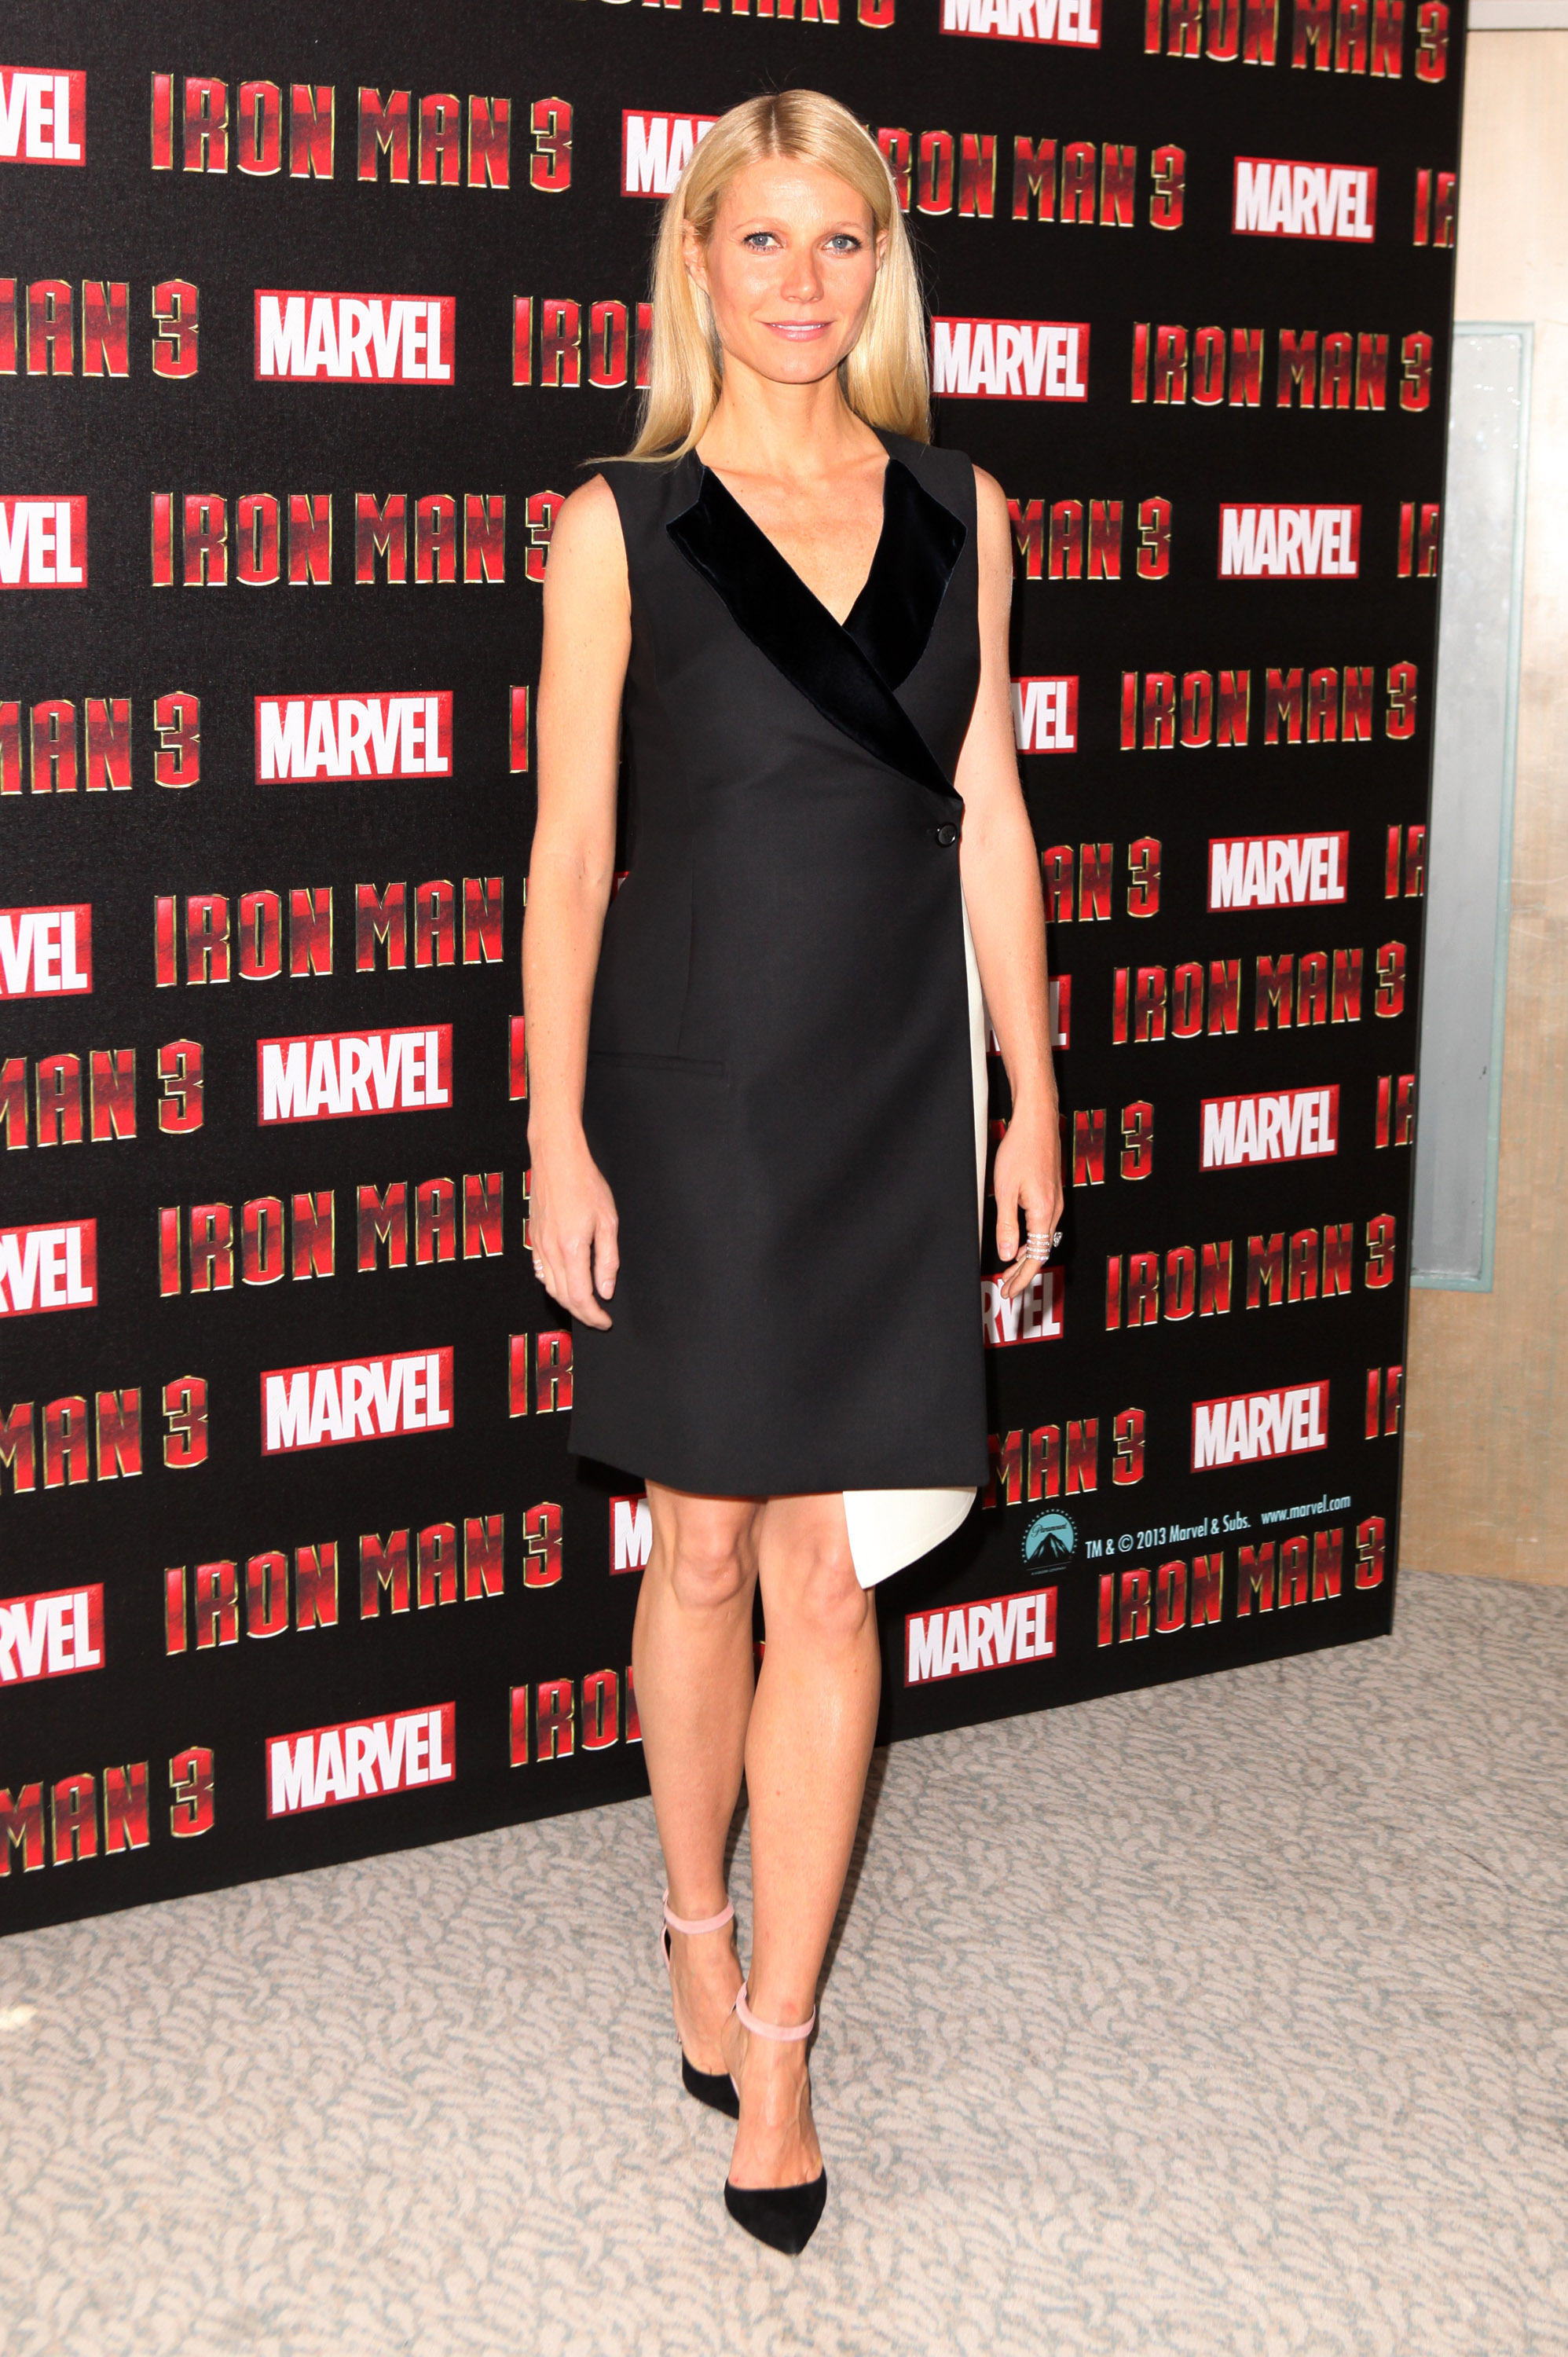 Gwyneth Paltrow wore black and white for a photocall in London.